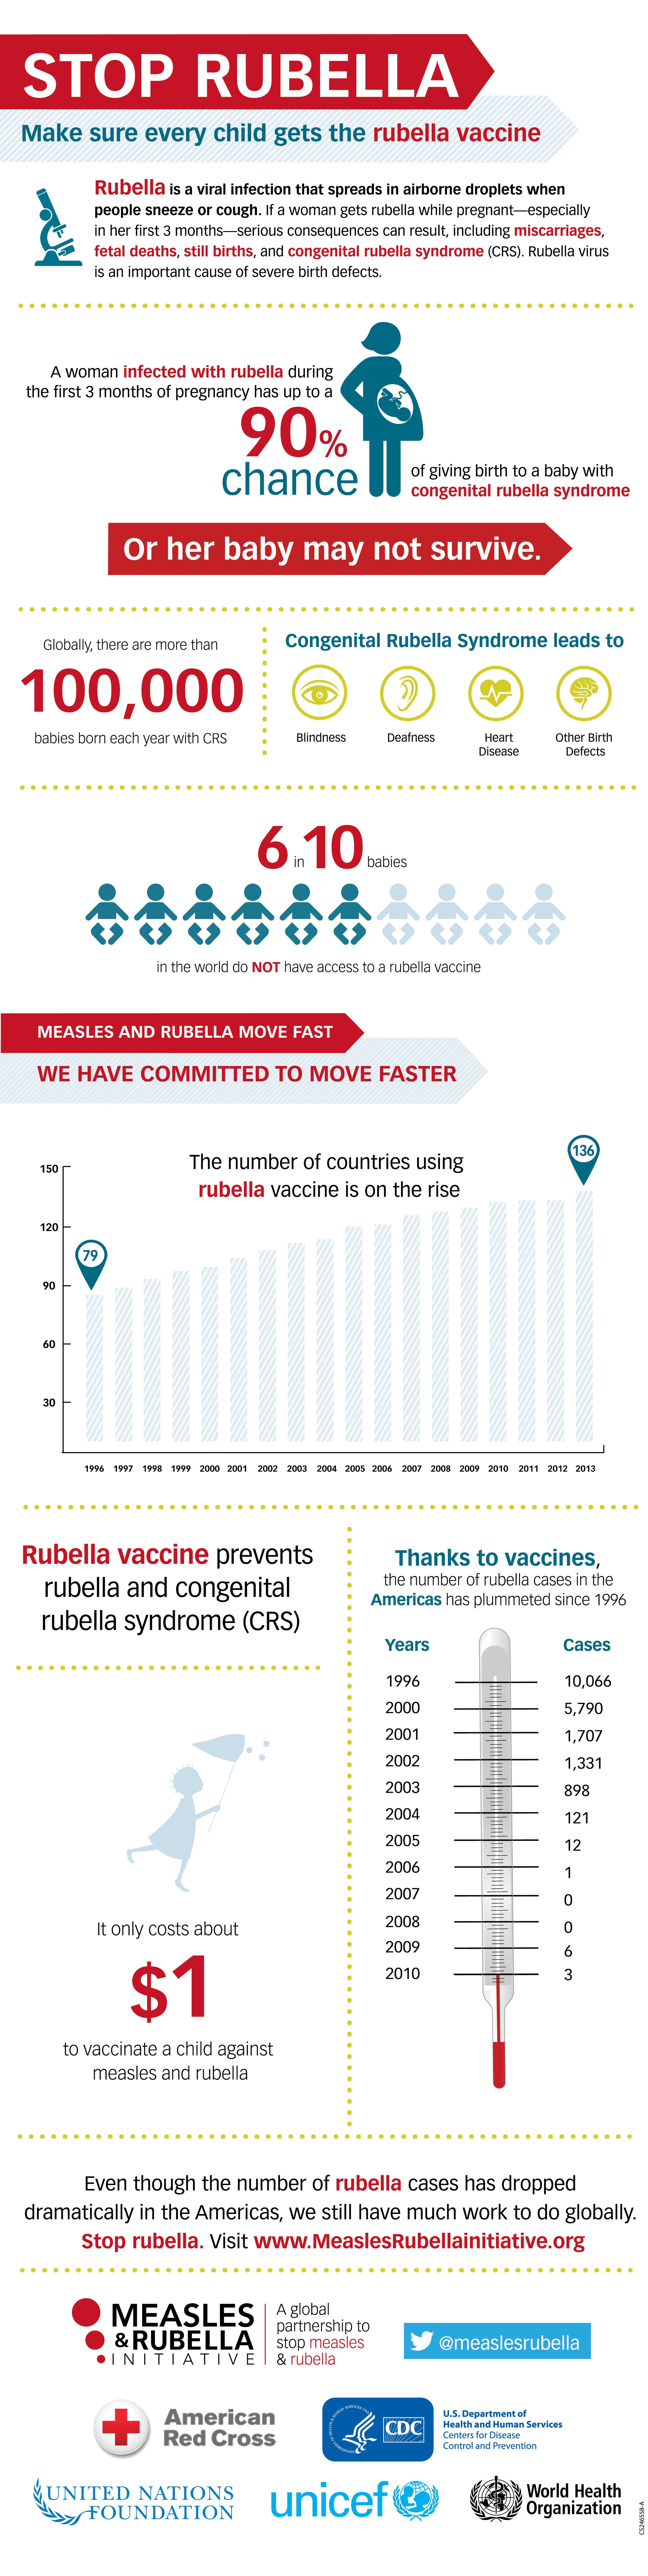 Stop Rubella Make Sure Every Child Gets the Rubella